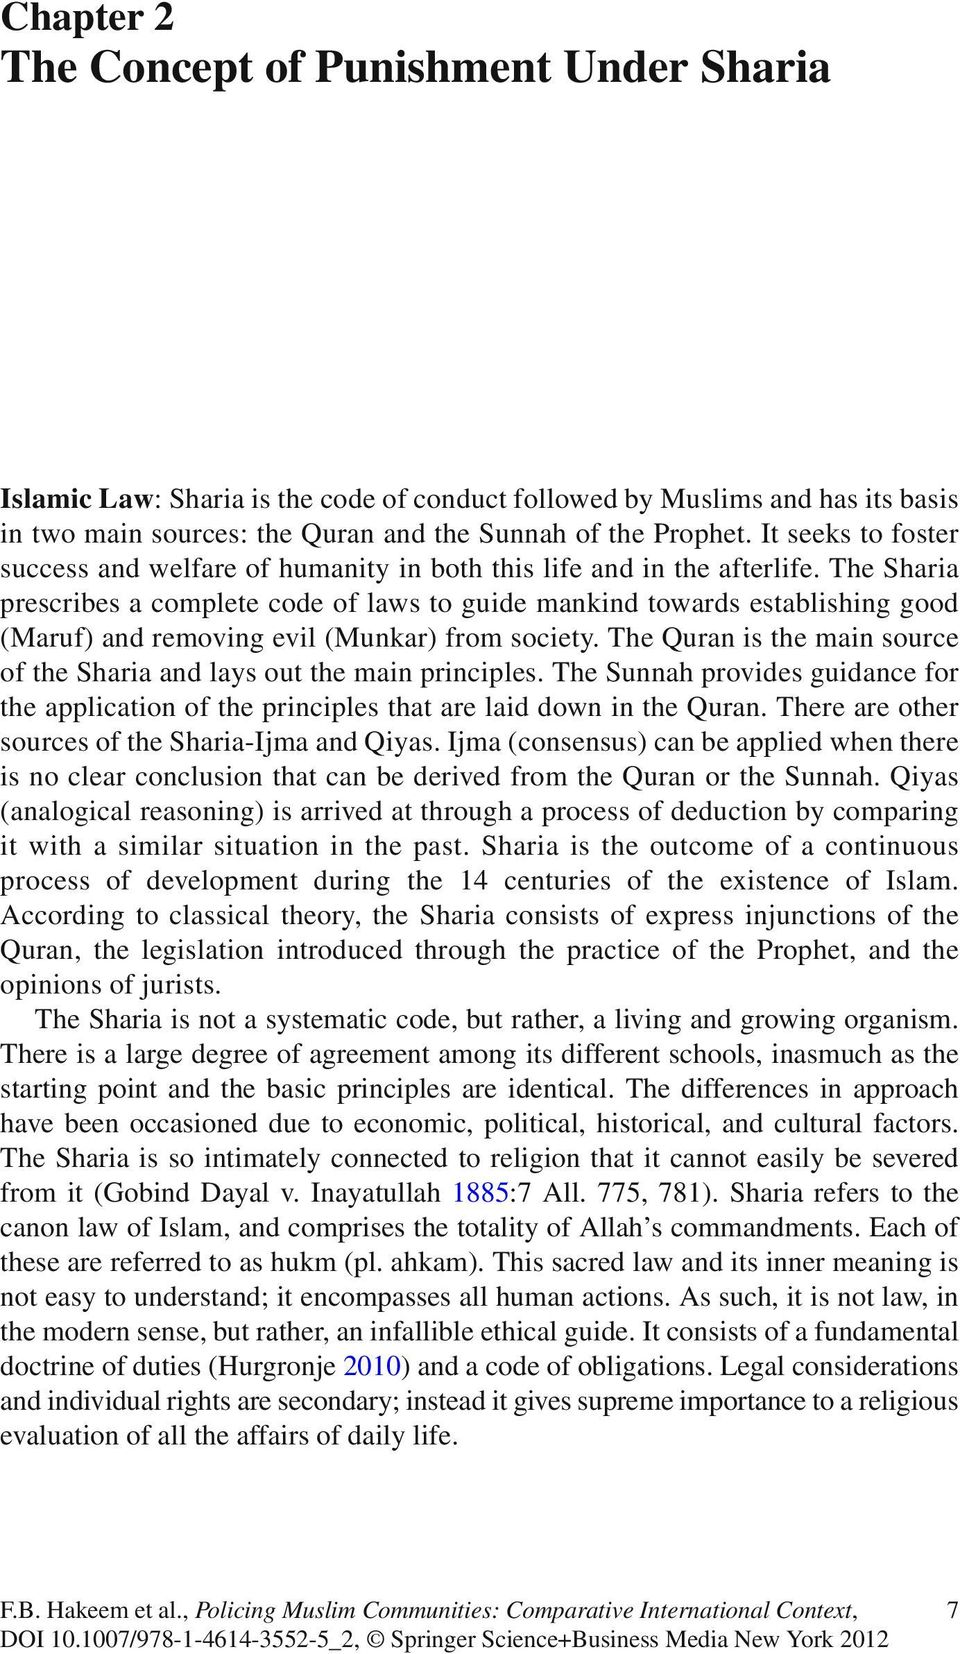 Chapter 2 The Concept of Punishment Under Sharia - PDF